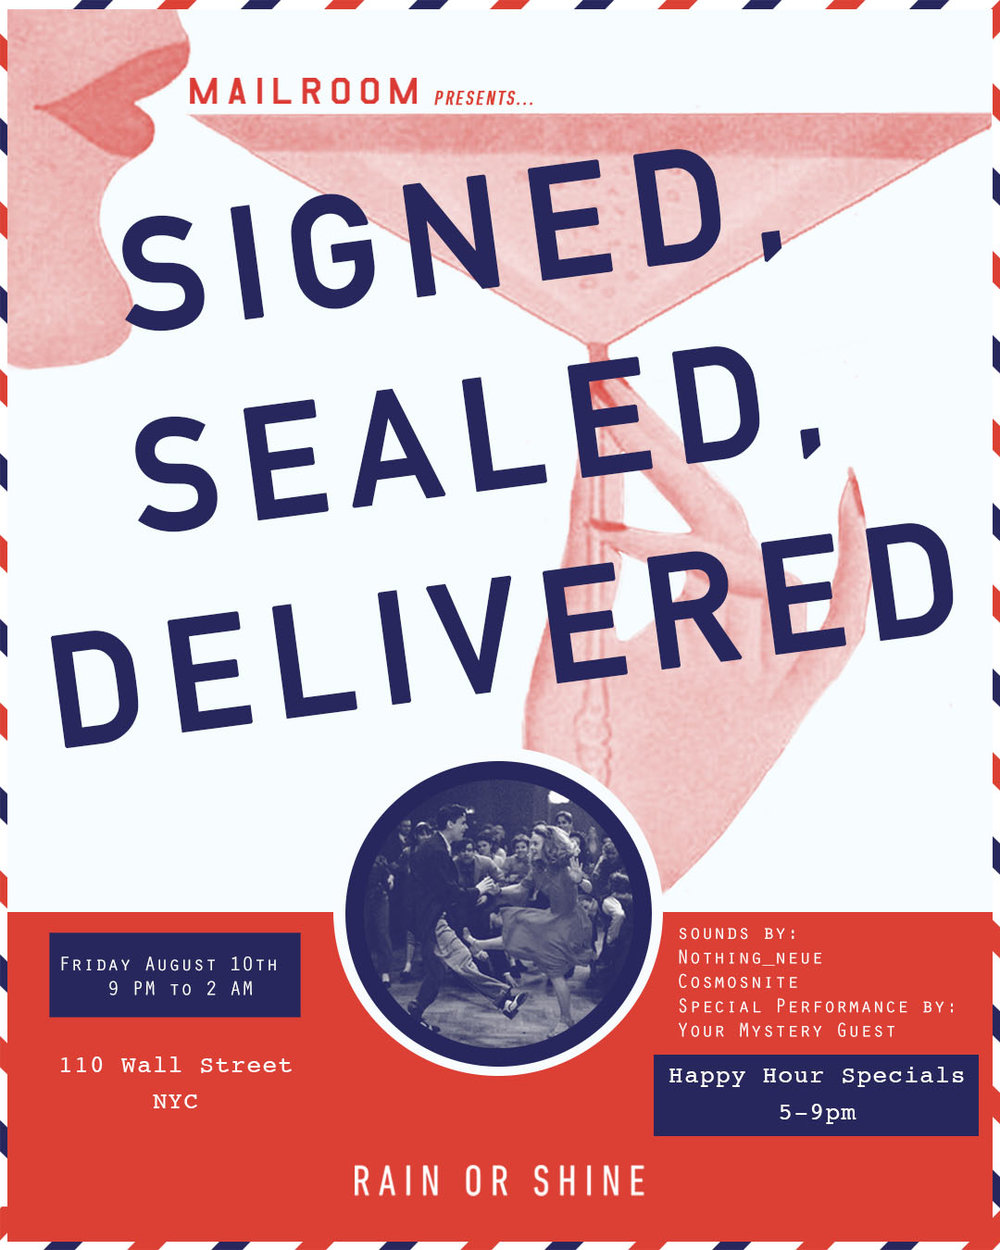 Signed, Sealed, Delivered - Friday, Aug 10th, 20189 PM to 2 AMSounds by: Nothing_Neue & Cosmosnite& Special Performance byYour Mystery Guest